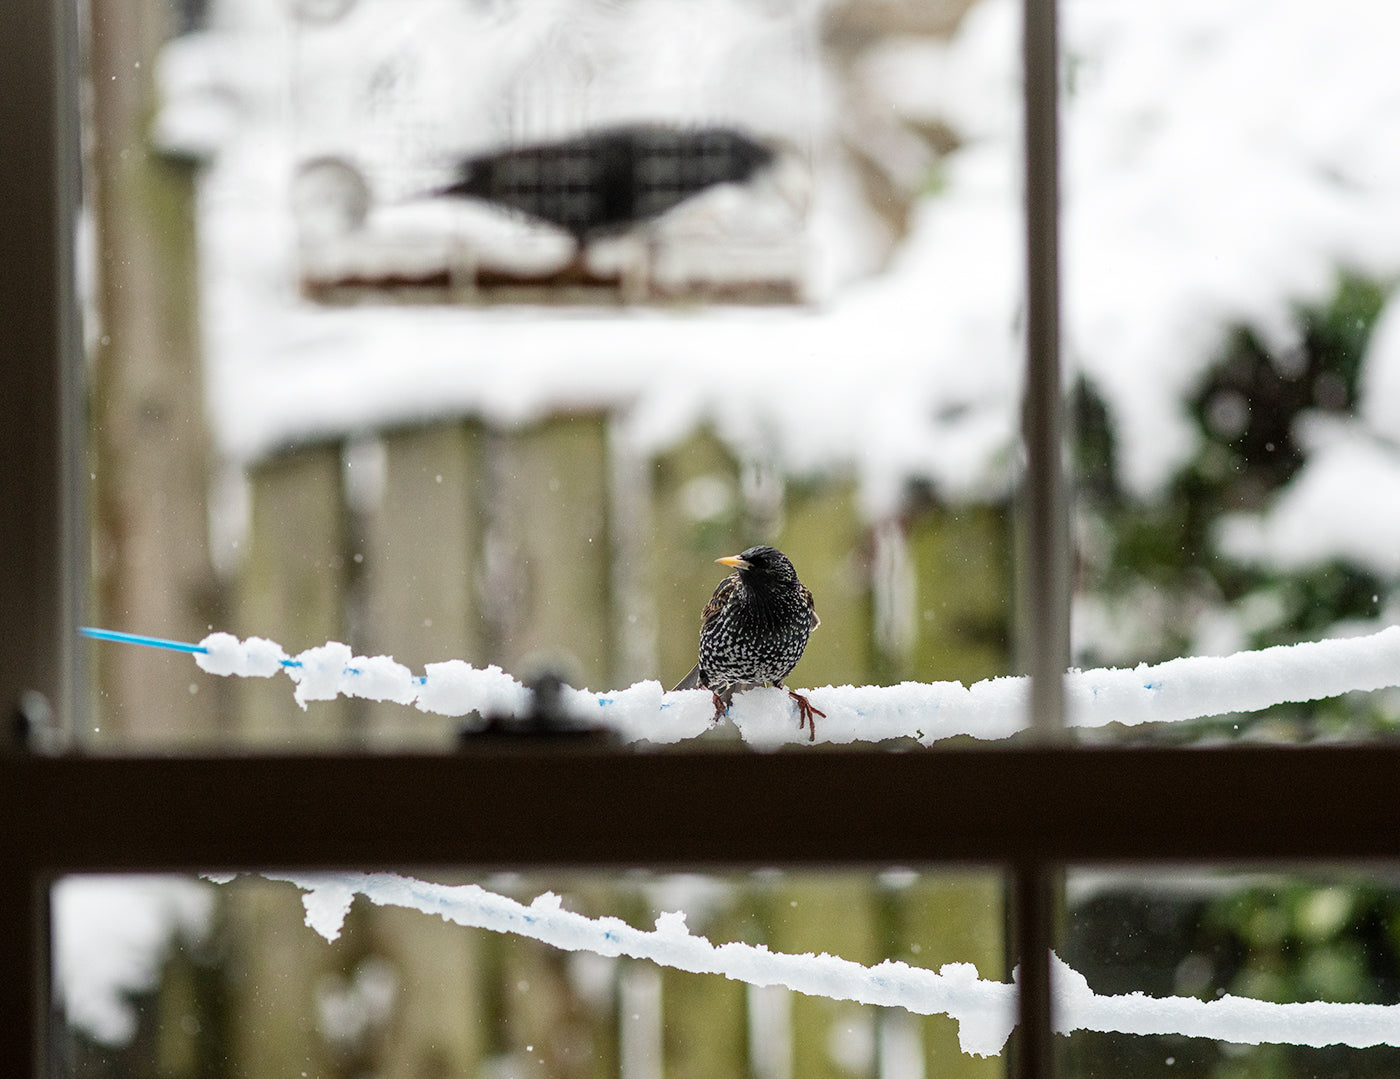 Starlings through a window